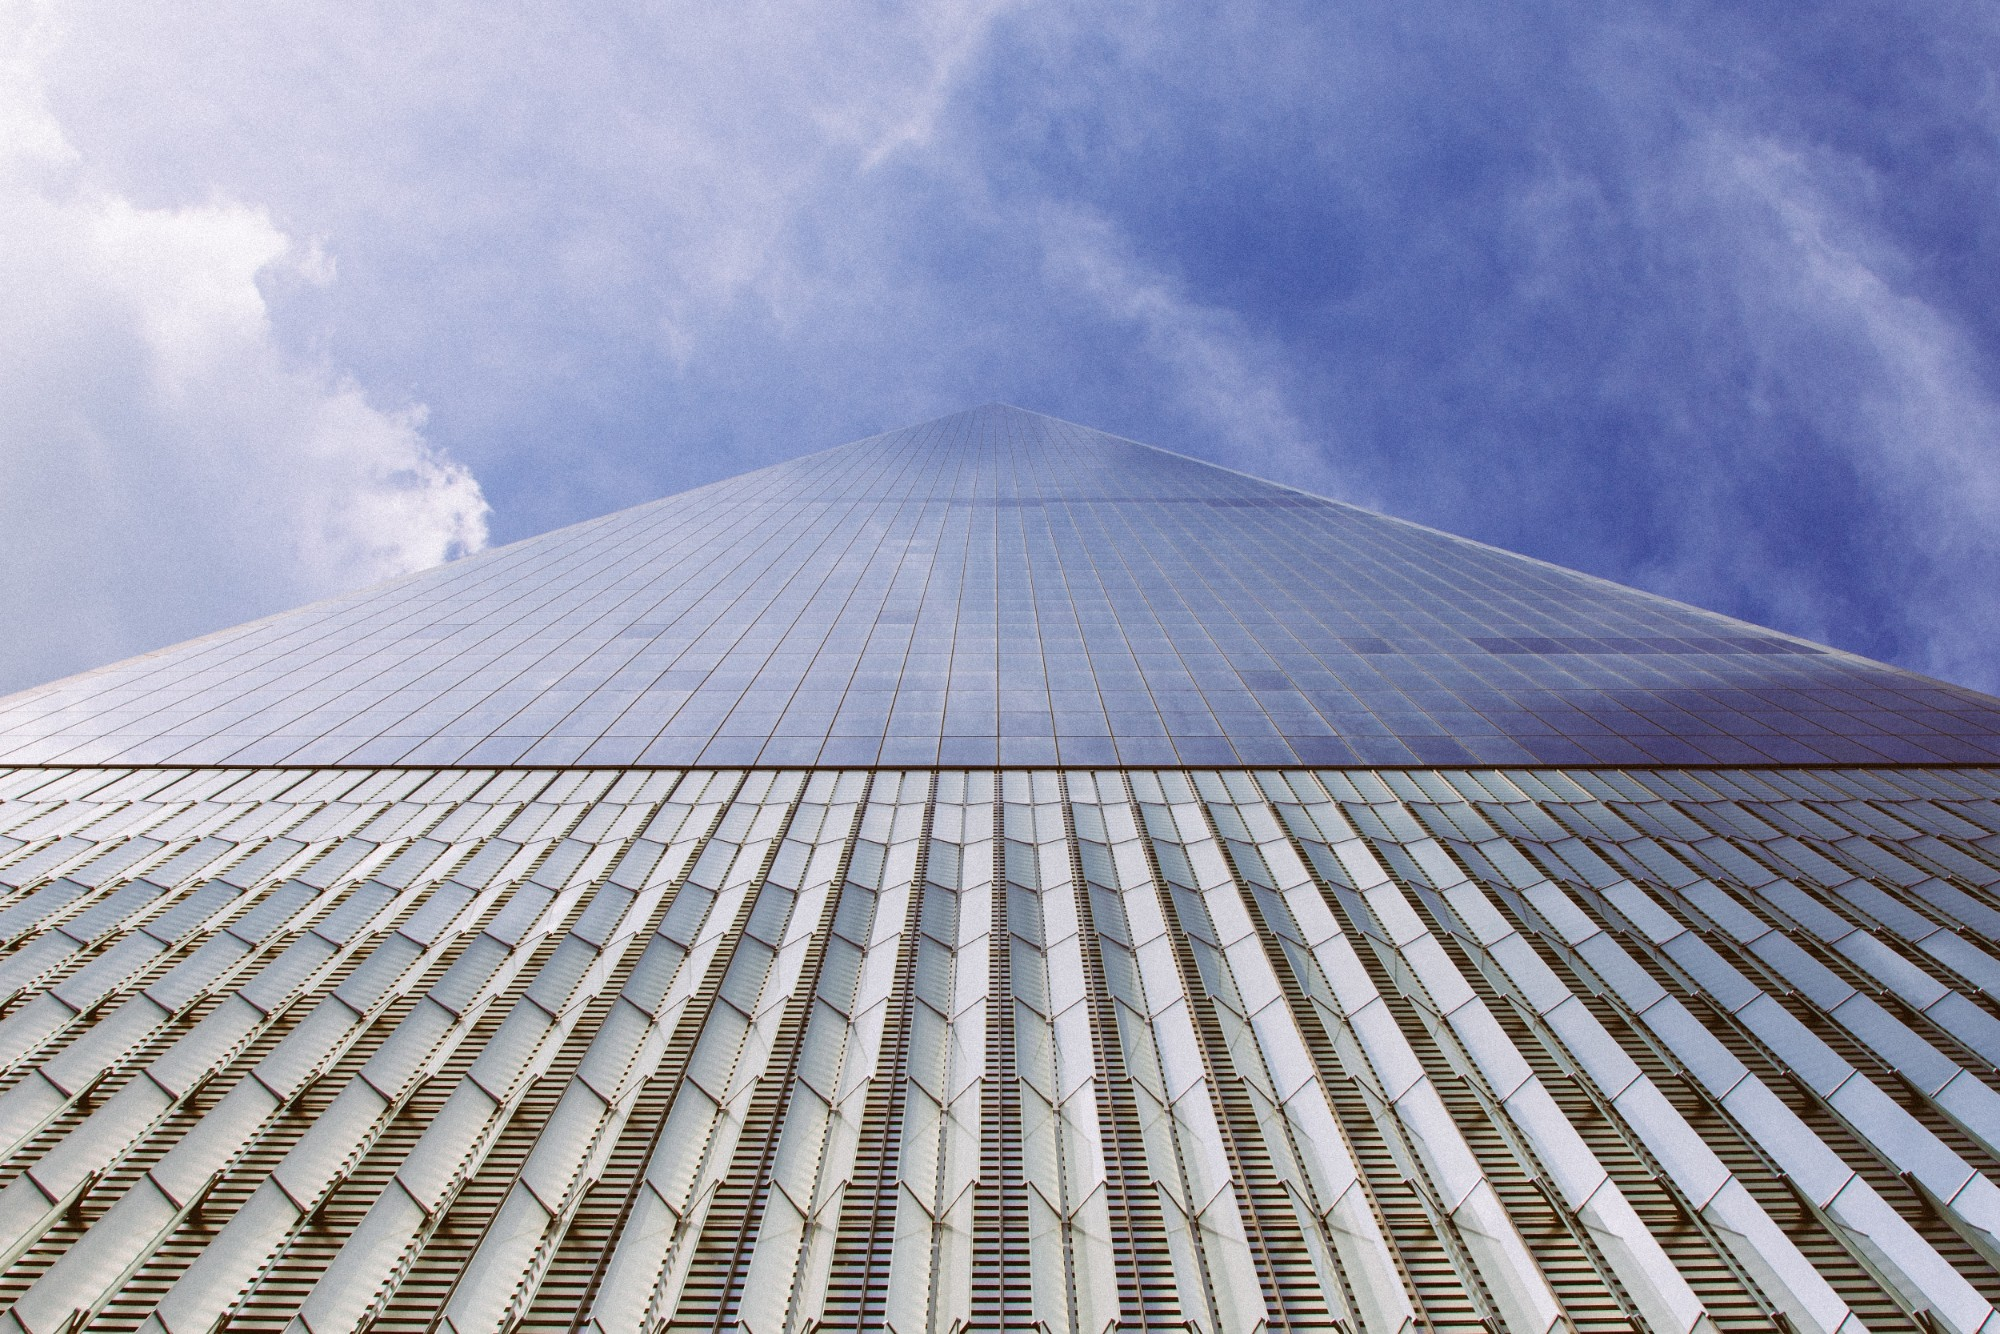 A view looking up One World Trade in NYC from the ground